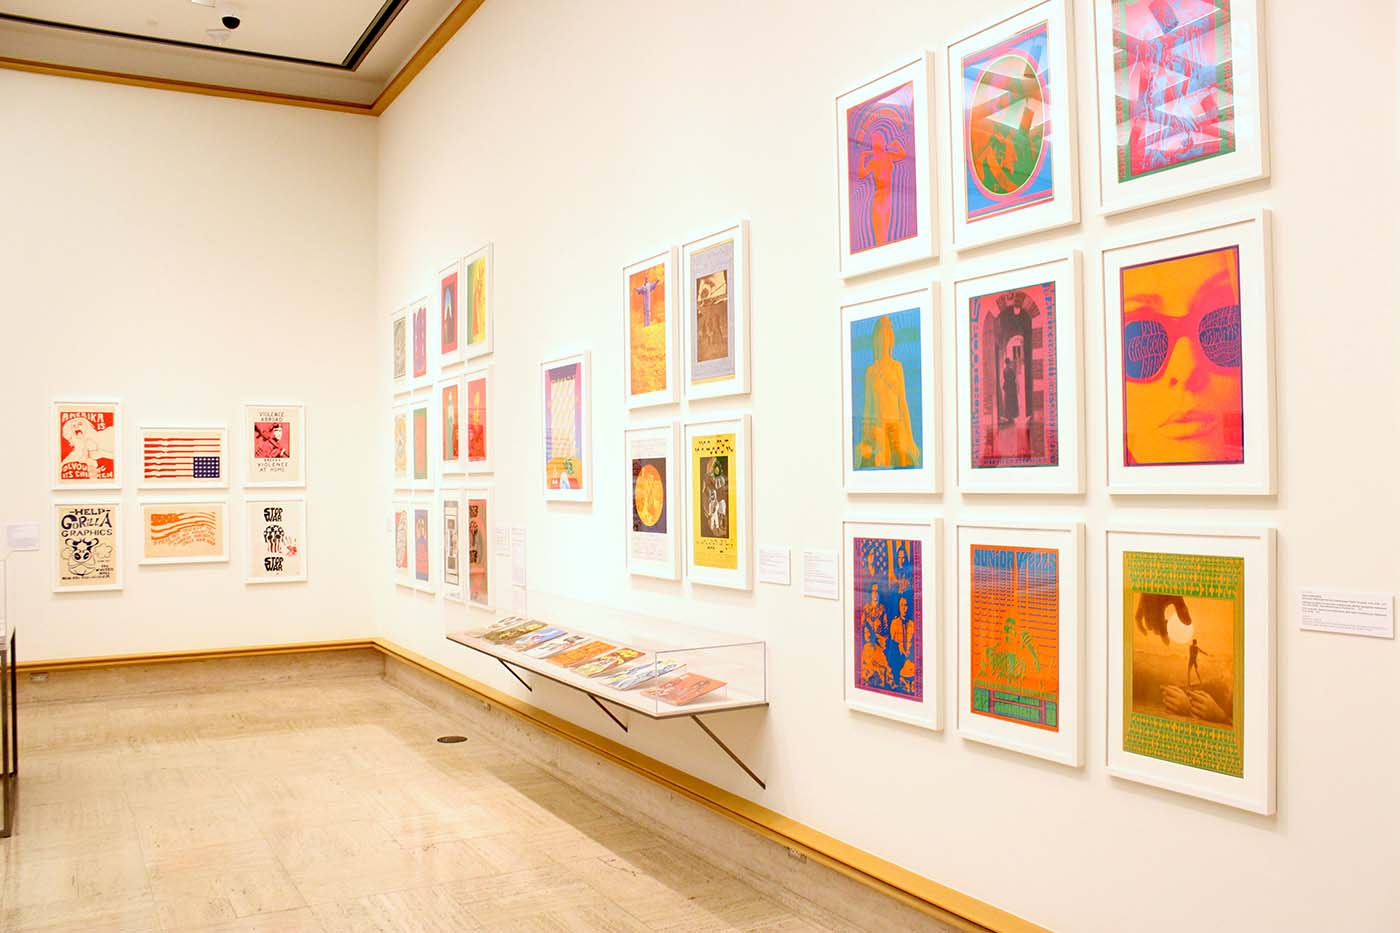 Psychedelic posters and printed matter, installation view